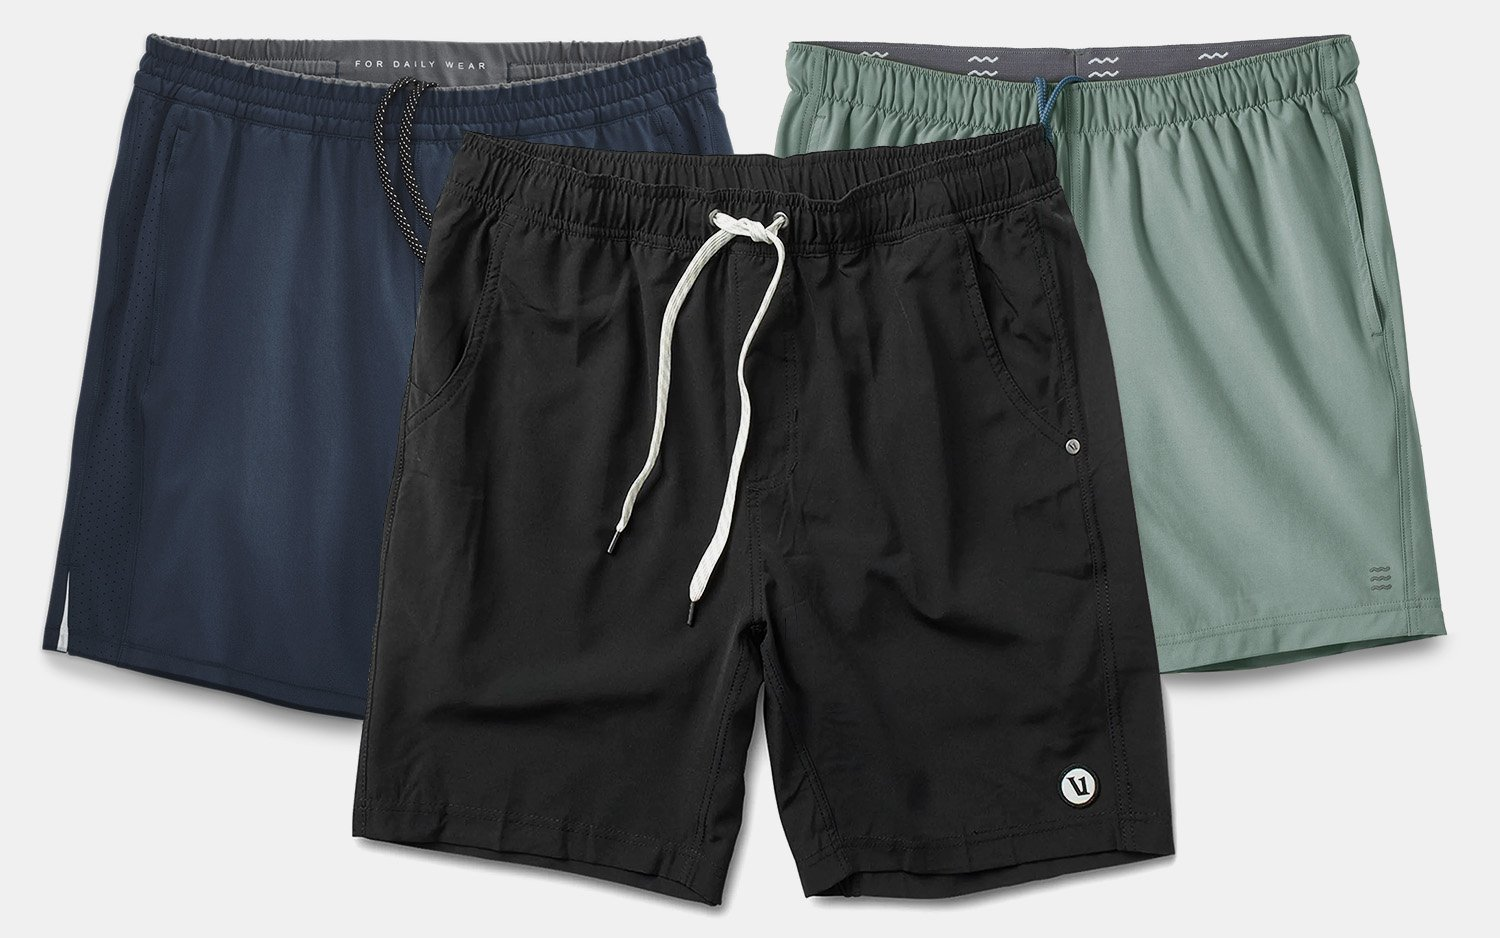 The 20 Best Men's Workout Shorts